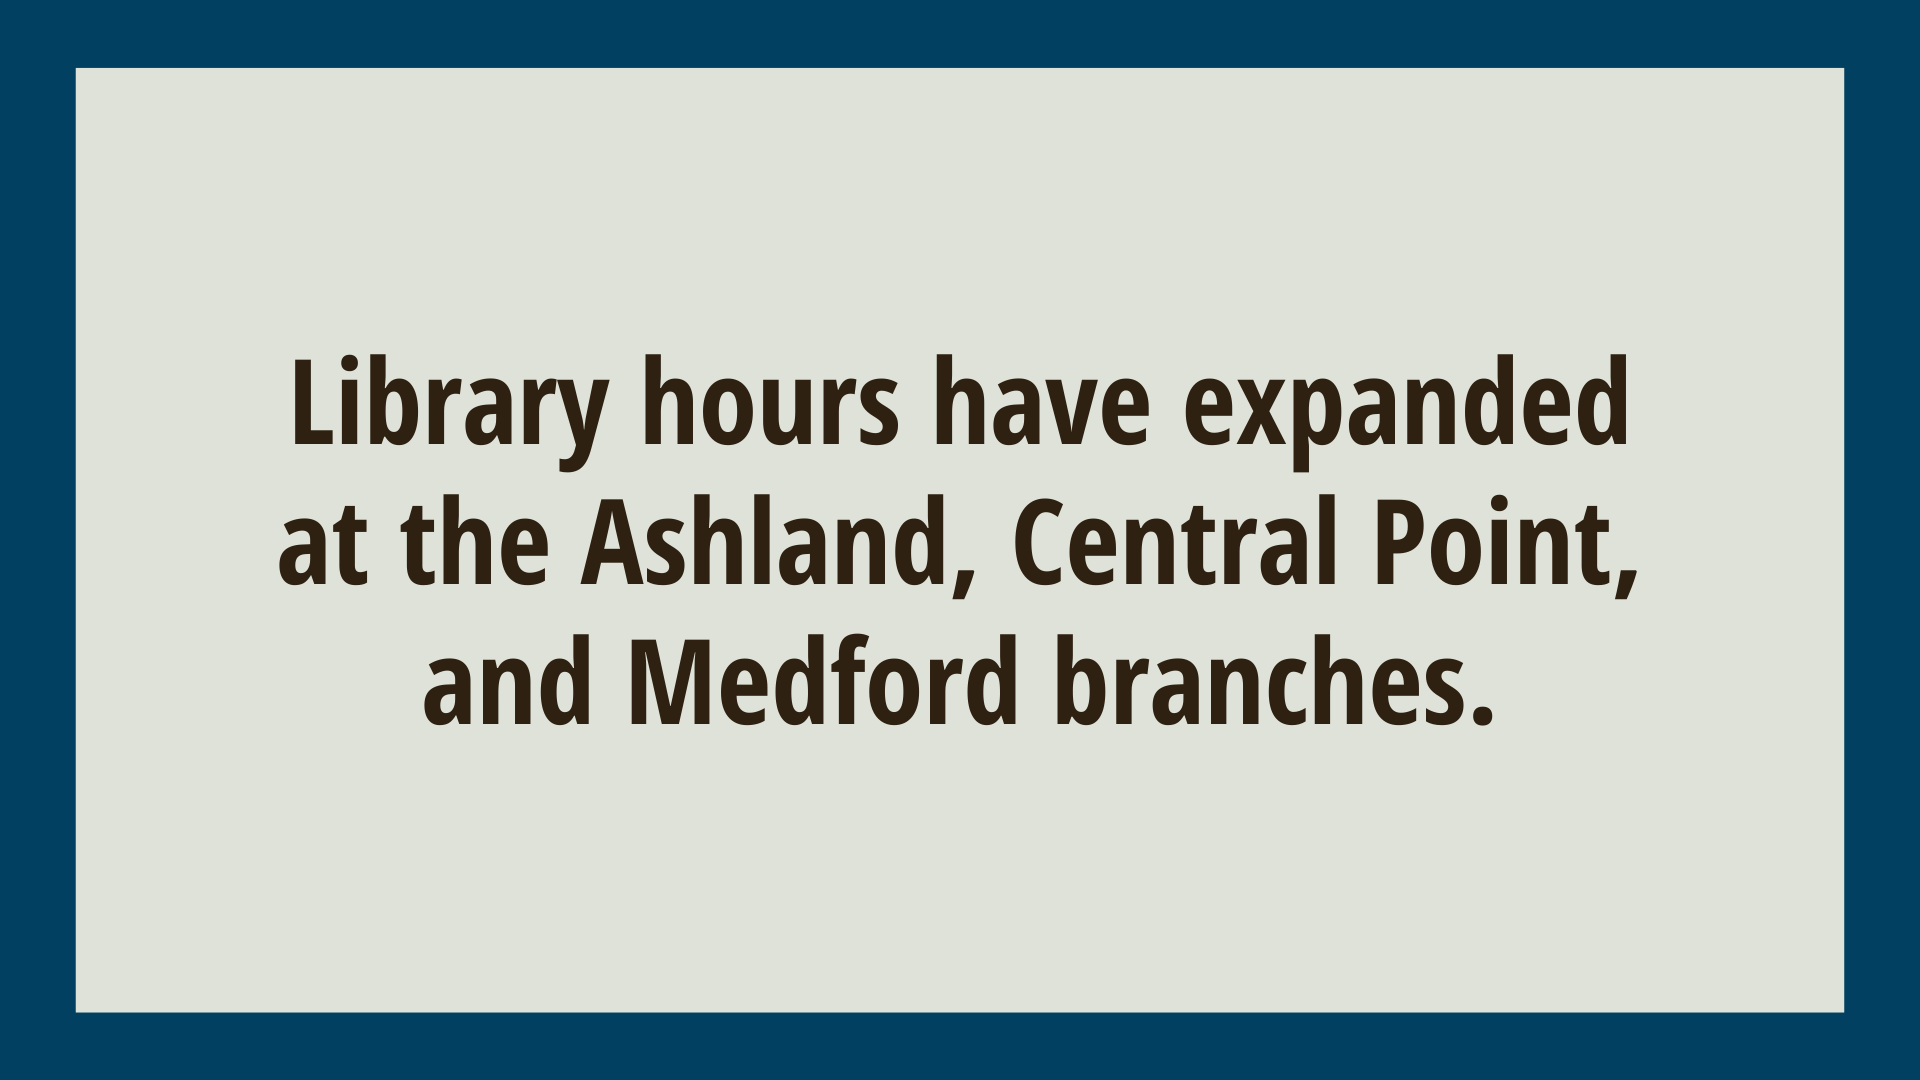 Library hours have expanded at the Ashland, Central Point, and Medford branches.